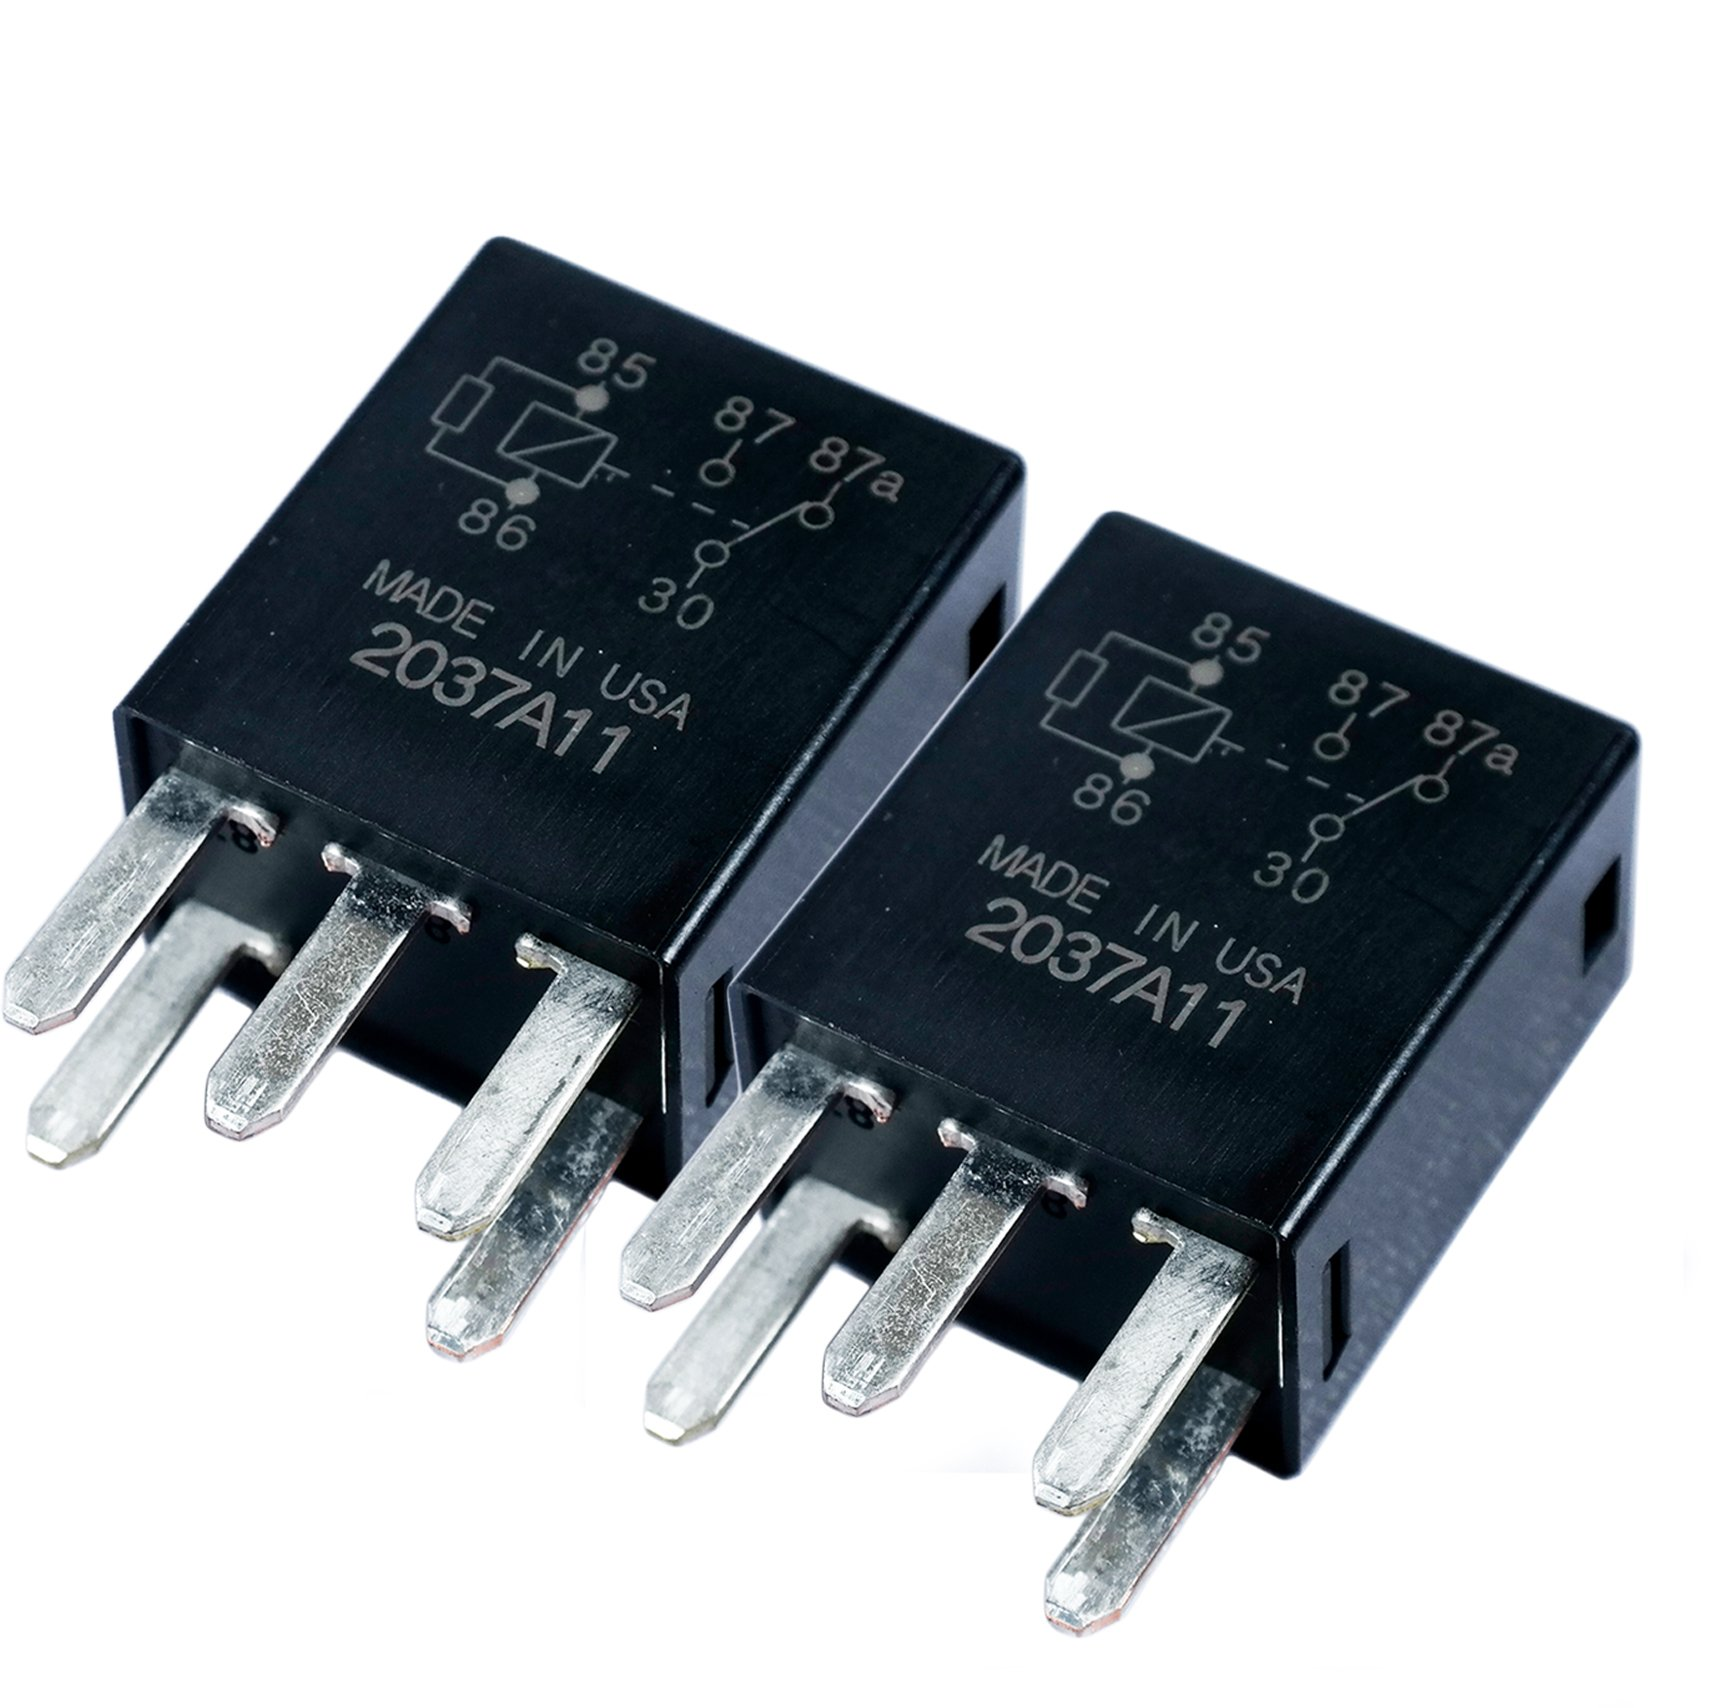 Cheap Accessory Power Relay Find Deals On 3pcs Dc 12v Delay Timer Module Turn Off Get Quotations 2x Chrysler Dodge Jeep Plymouth 05269988aa Omron 21911c 12vdc 10a 5 Pin